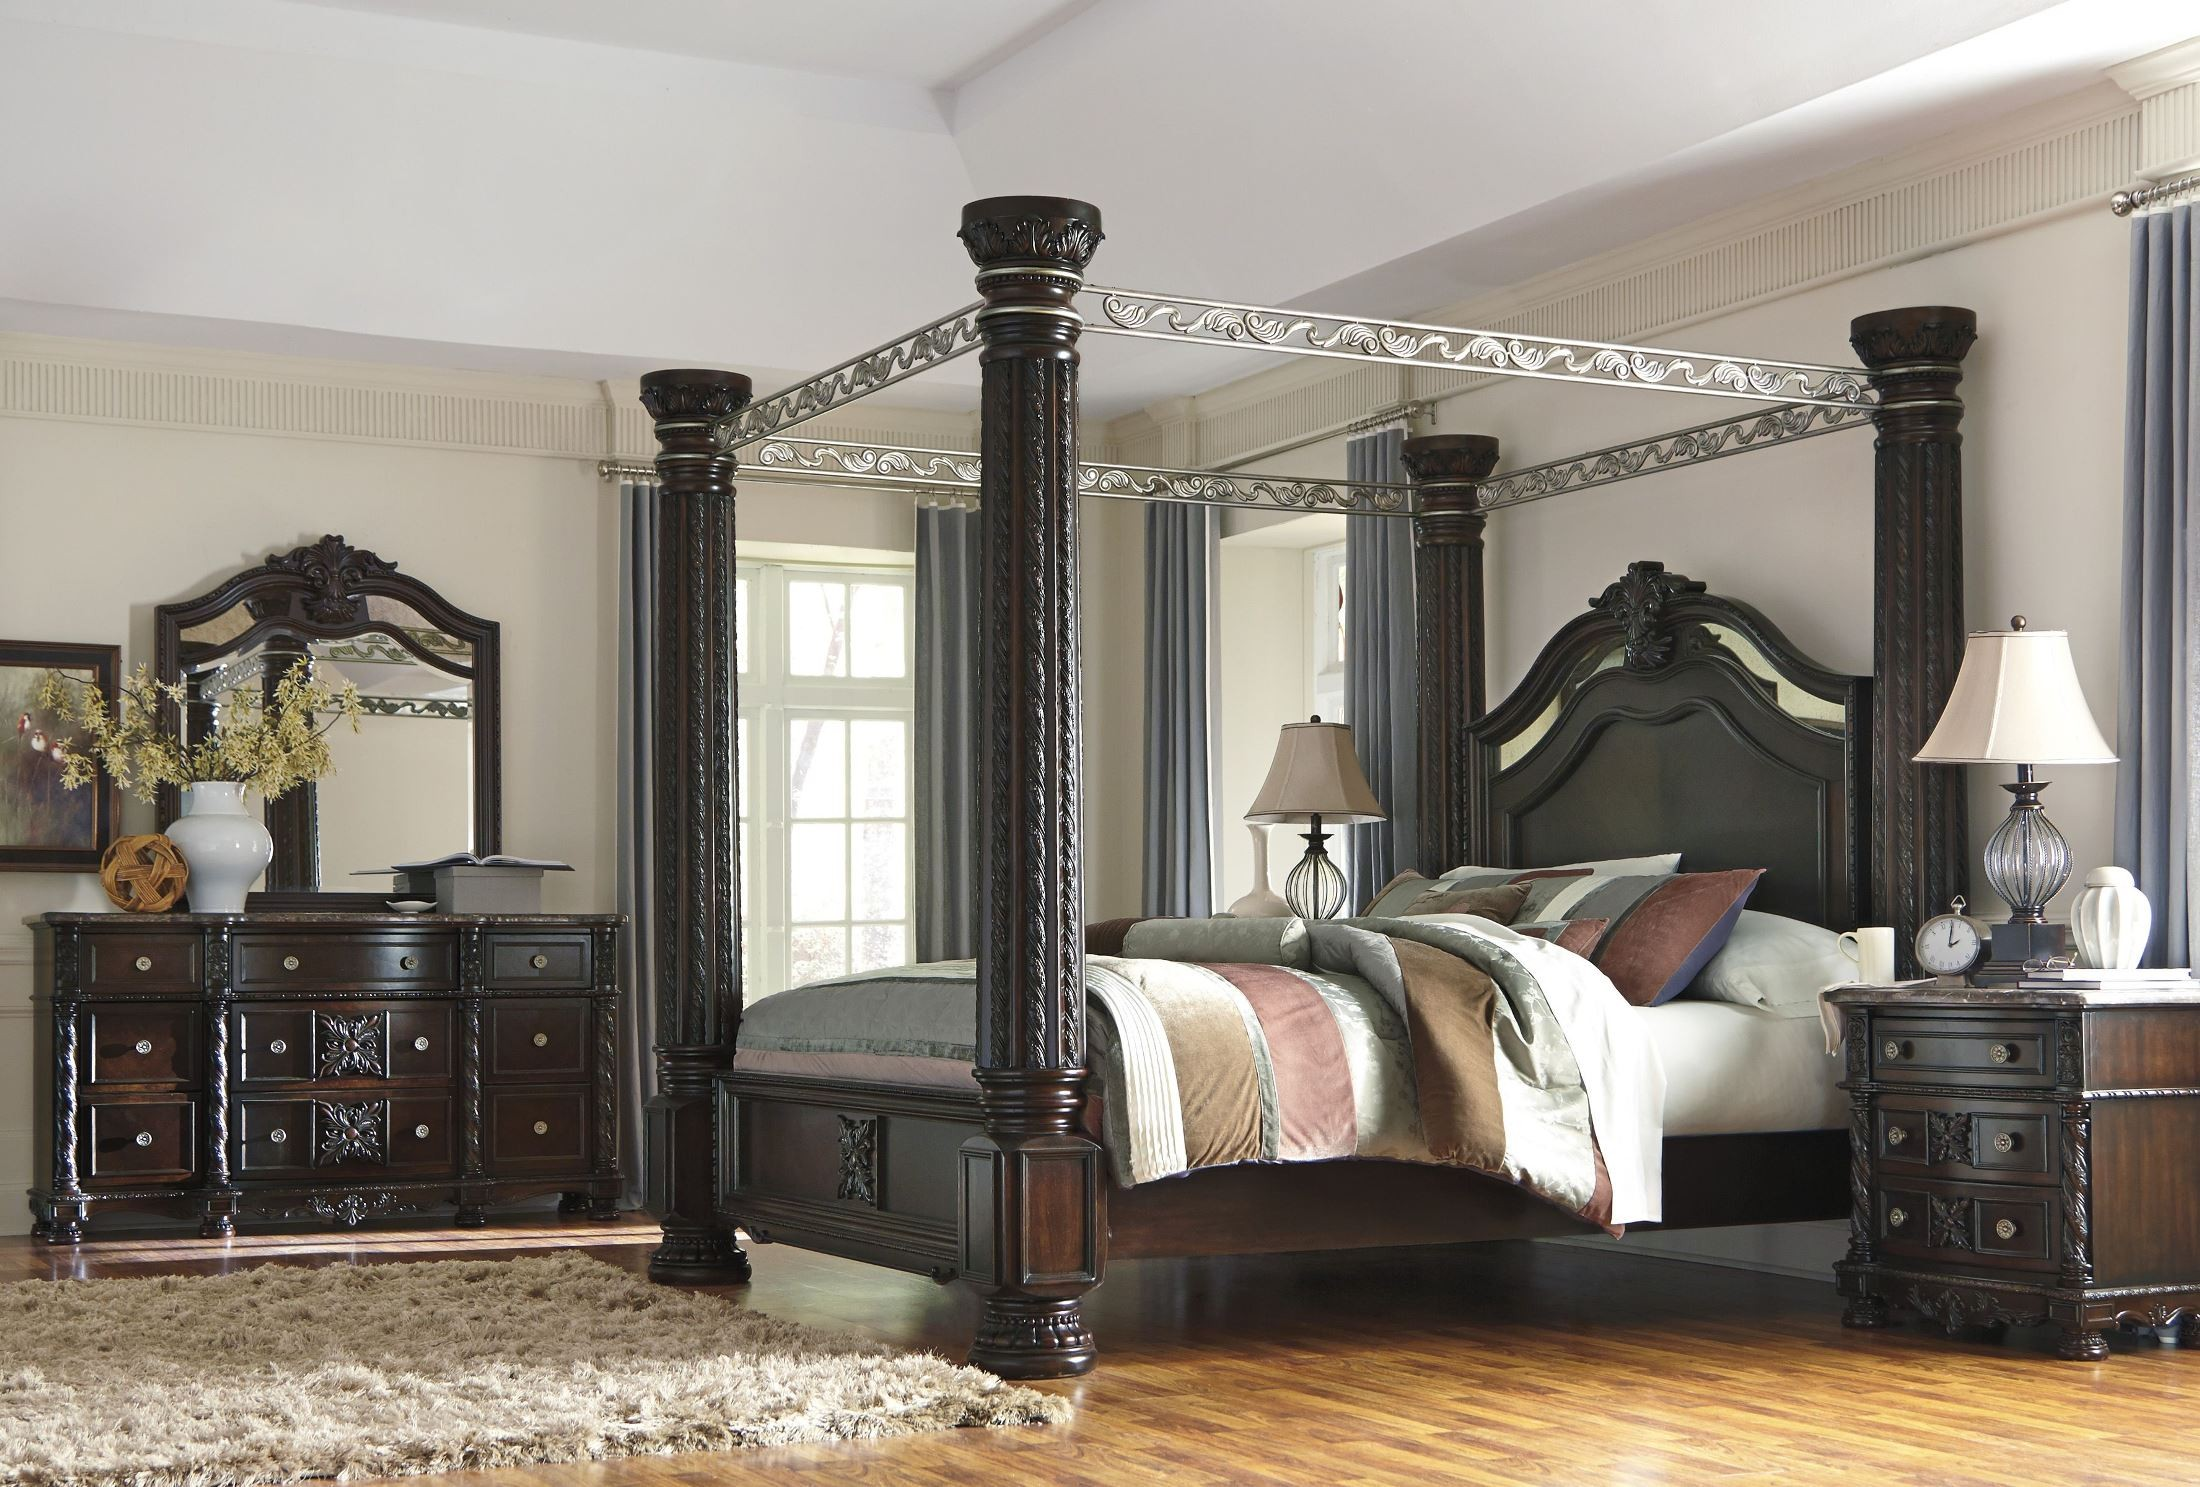 laddenfield poster canopy bedroom set b717 50 51 62 72 99